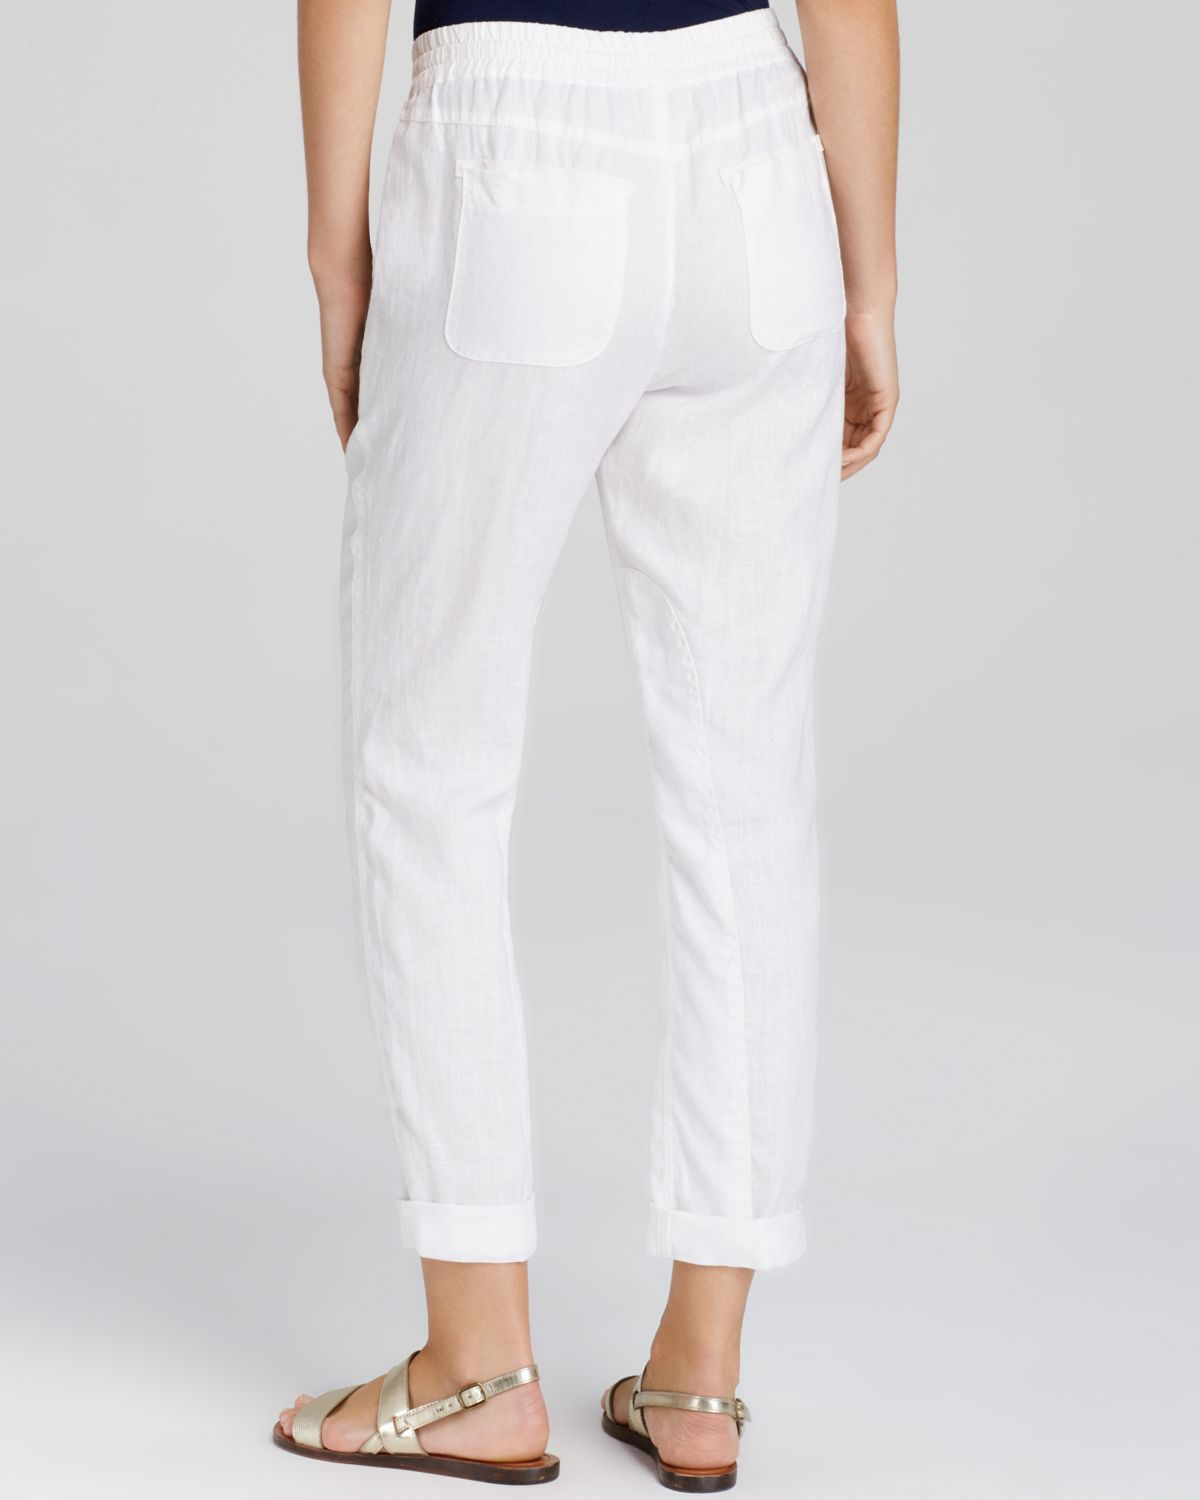 Jun 11, · But trust me: linen pants are a great item of clothing to wear in the summer. Unlike jeans, leggings, or trousers, linen pants are loose and light, made from breezy fabric that might actually help keep you cool instead of trapping heat in.